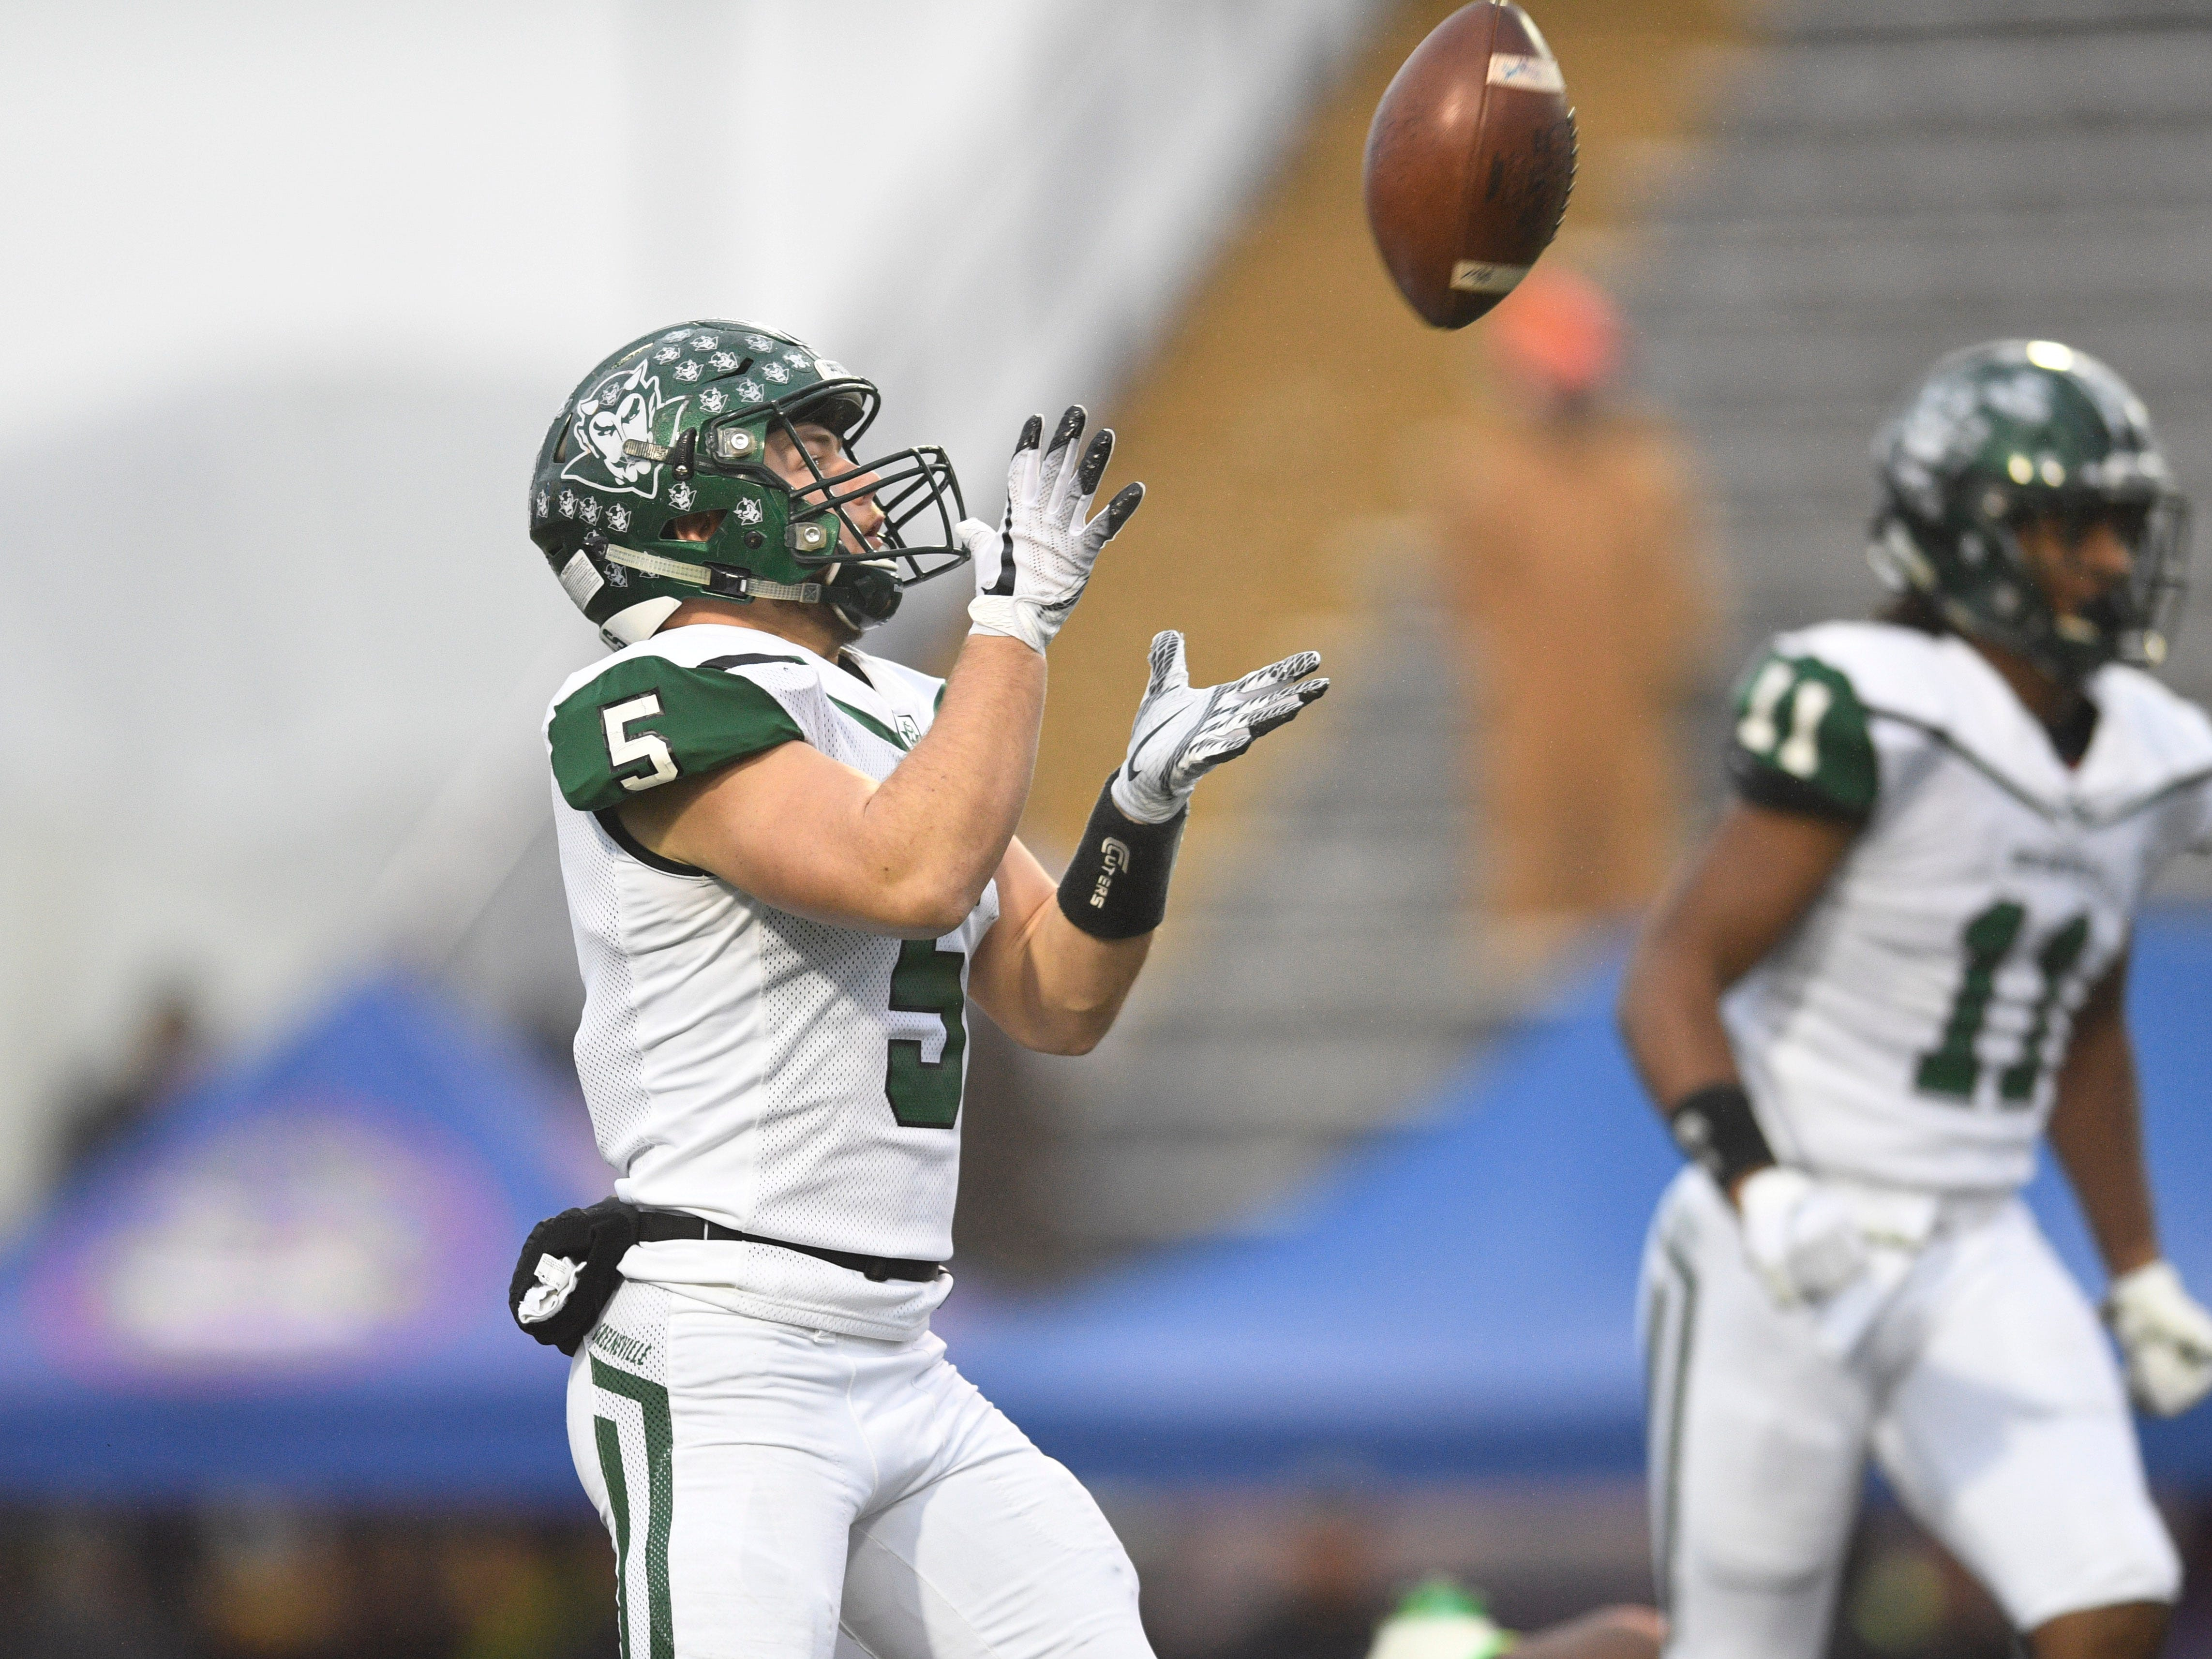 Greeneville's Garrin Shuffler (5) catches a punt in the first quarter of the Class 4A BlueCross Bowl state championship at Tennessee Tech's Tucker Stadium in Cookeville, Tenn., on Thursday, Nov. 29, 2018.